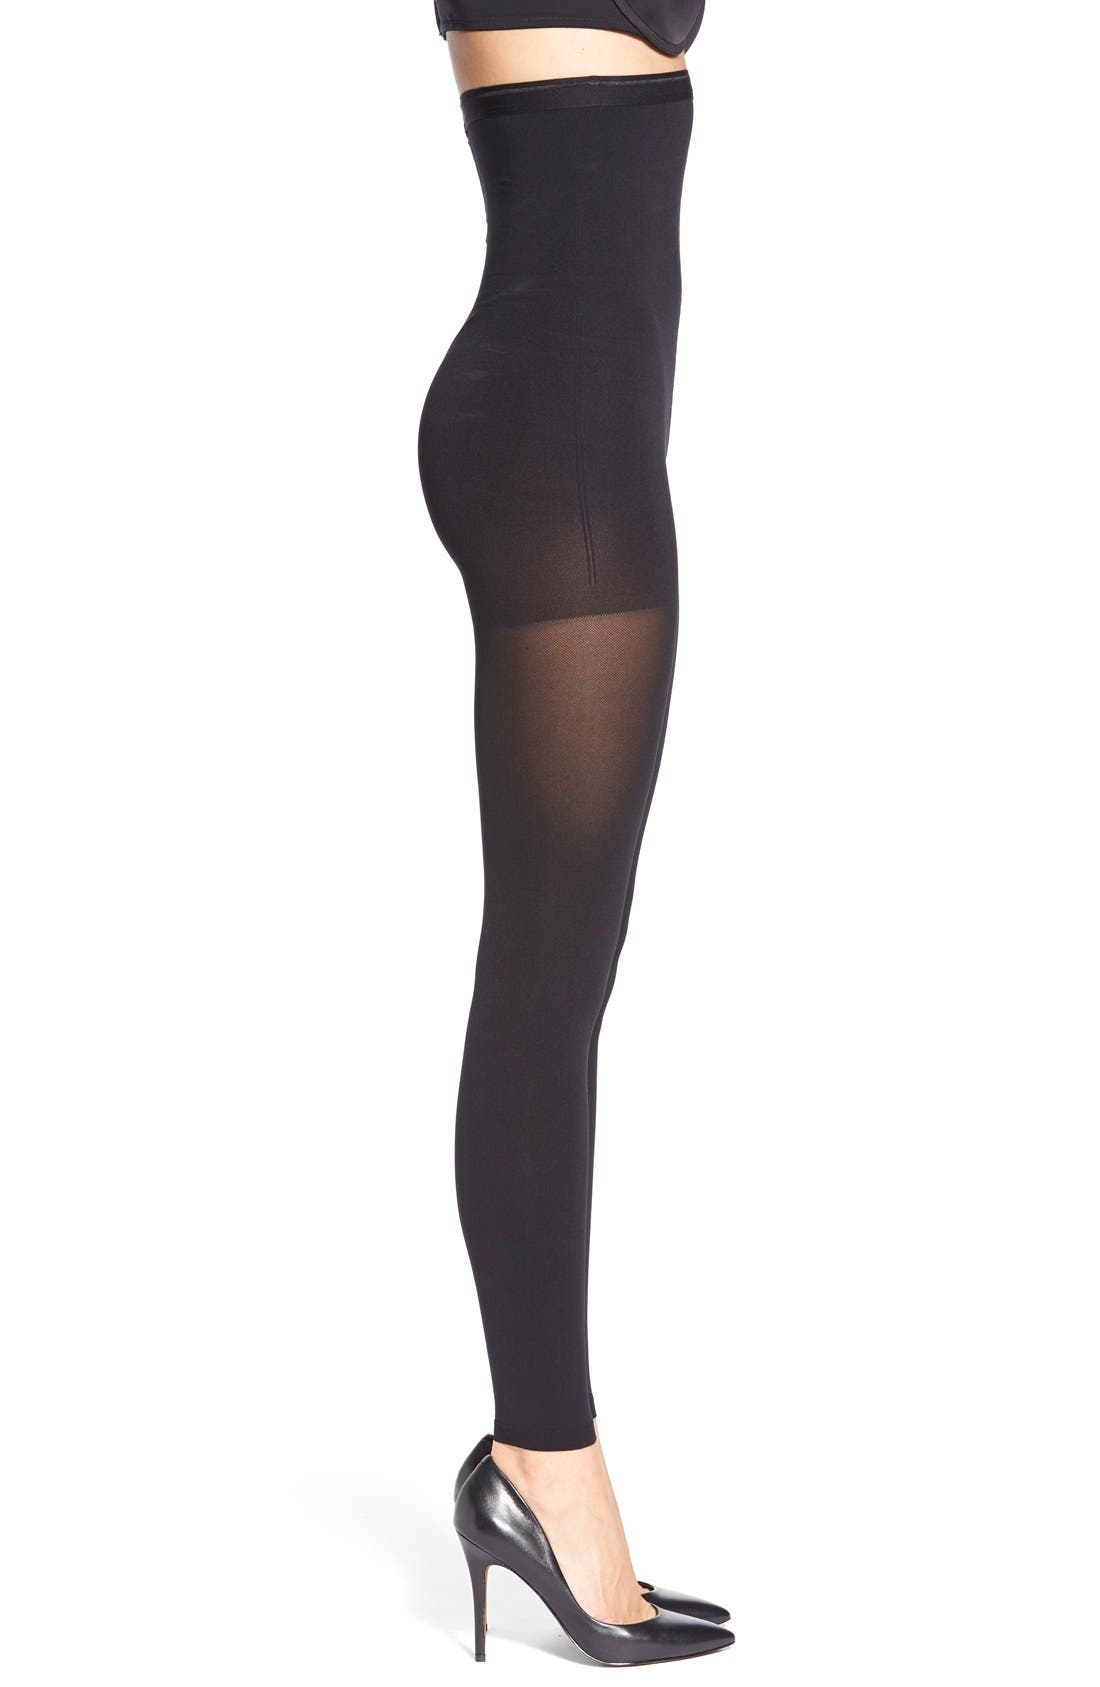 ITEM M6 High Rise Opaque Footless Shaping Tights in Black